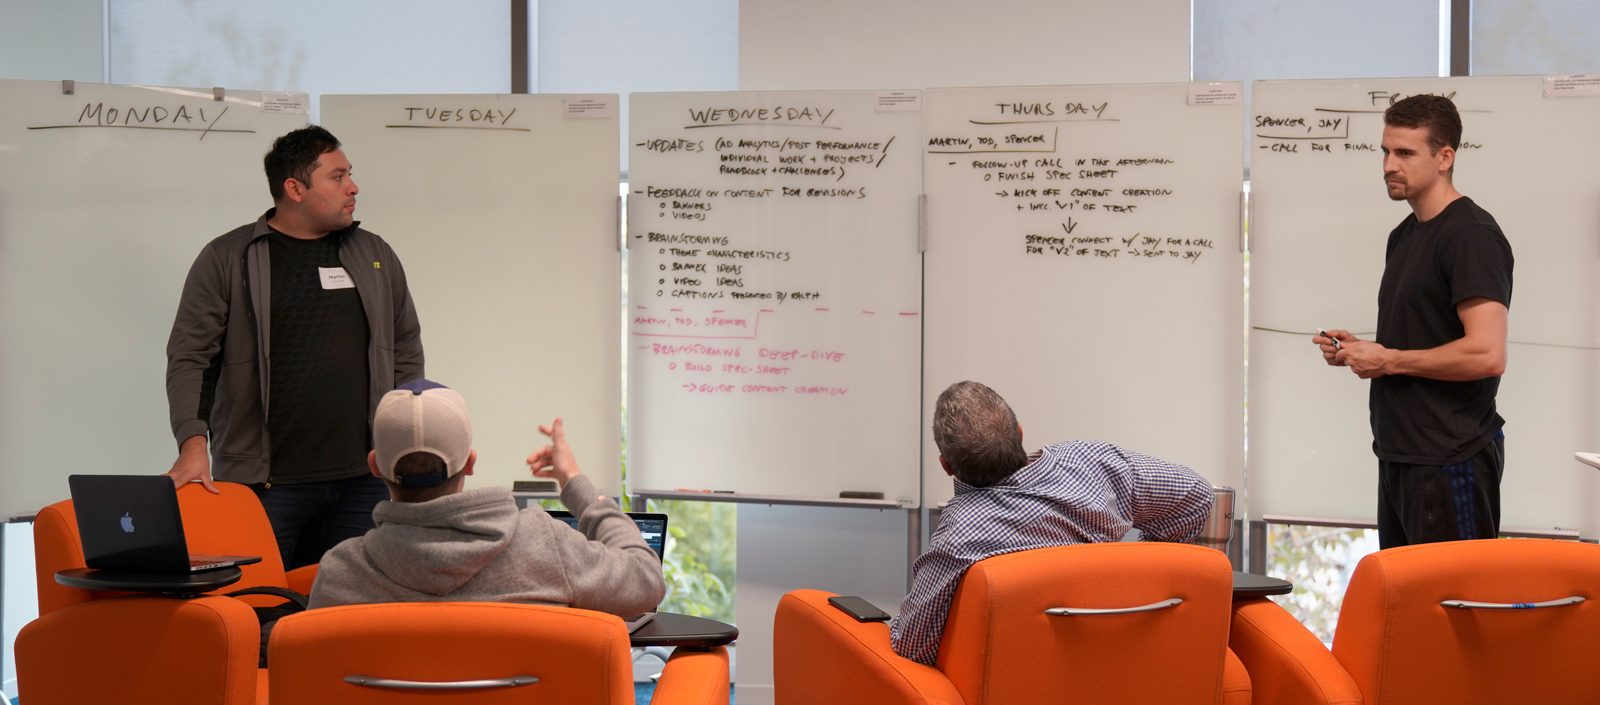 Photograph of a group of men collaborating. Two men standing up, on the right a Hispanic man wearing a jacket. To the right,a Caucasian man standing holding a marker. Two men are sitting down next to one another on orange chairs. All men seem to be collaborating for a weekly structure on the white boards.